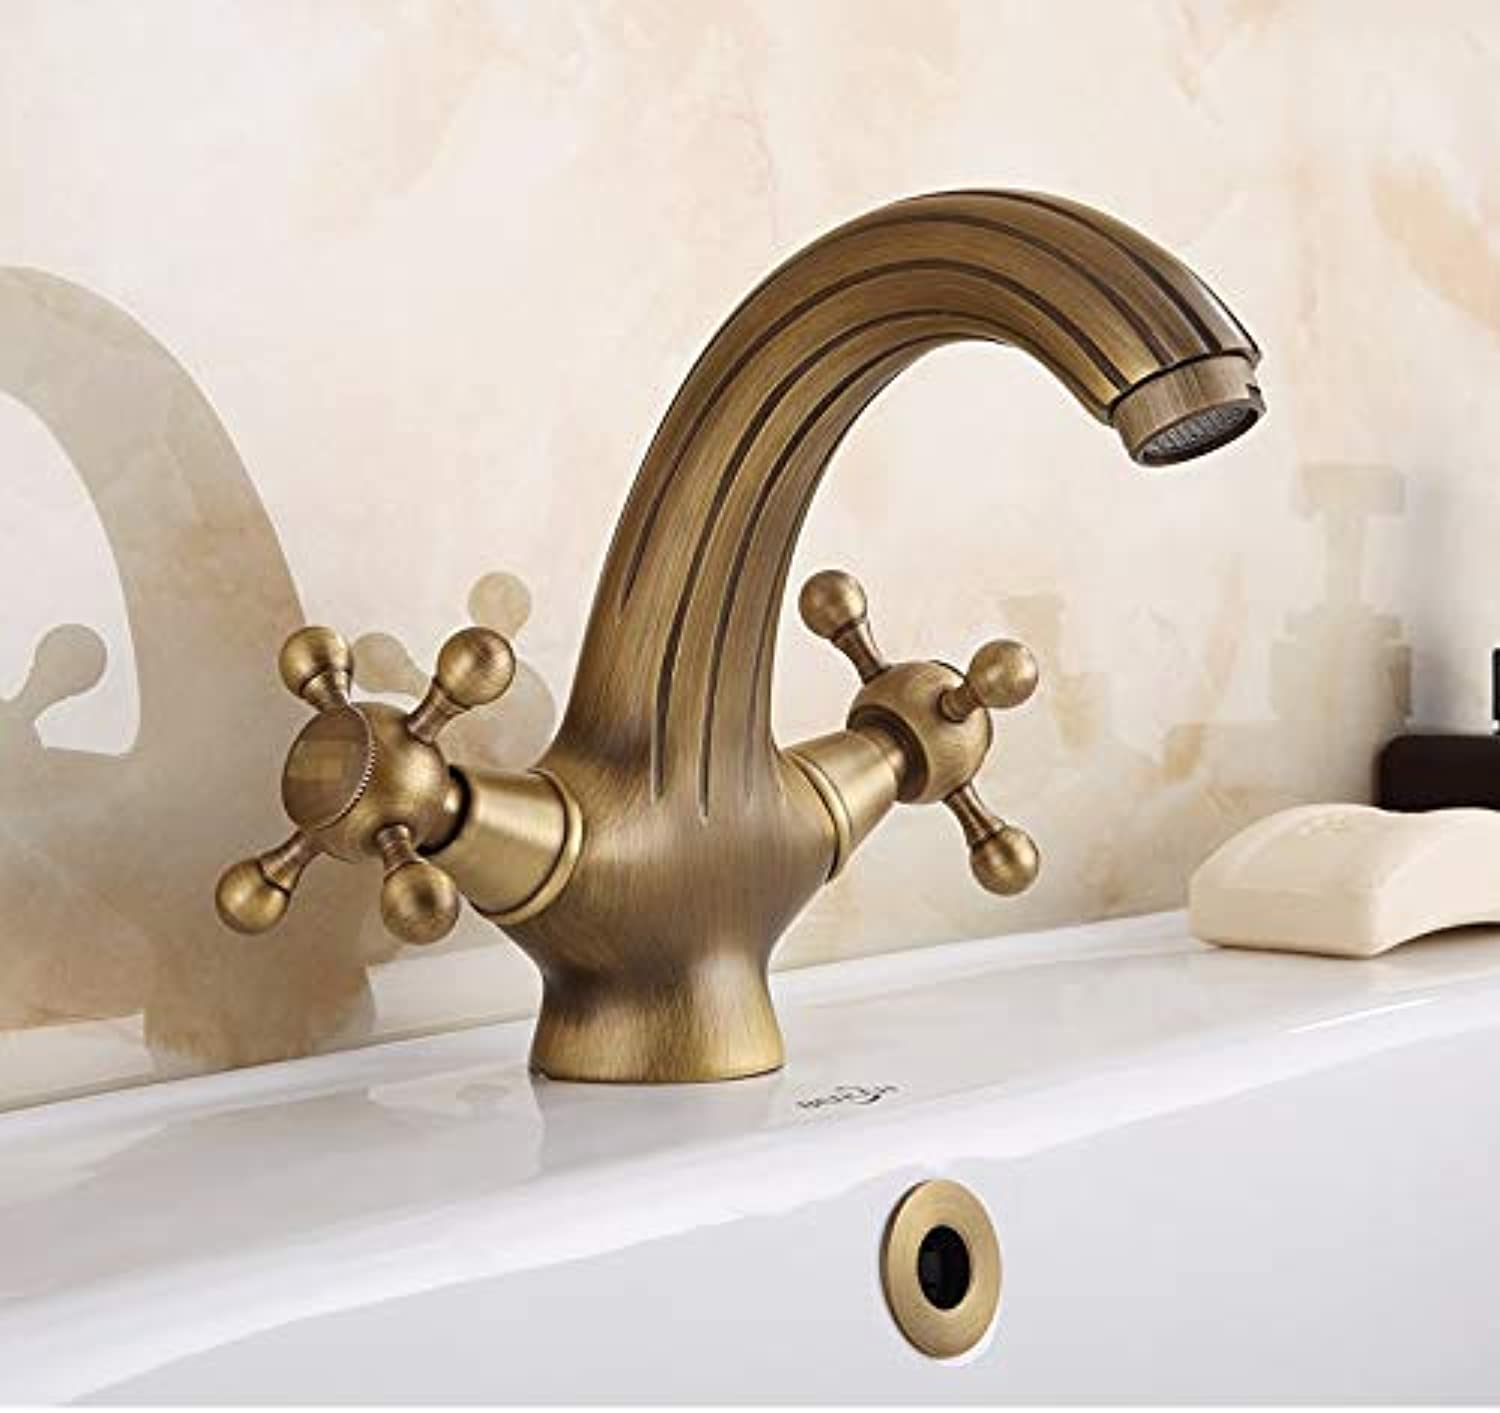 Kitchen Tap European Style Antique Tap Antique Toilet Double Single Hole Hot and Cold Basin Upper Basin Faucet Kitchen Taps Kitchen Sink Mixer Taps Basin Tap